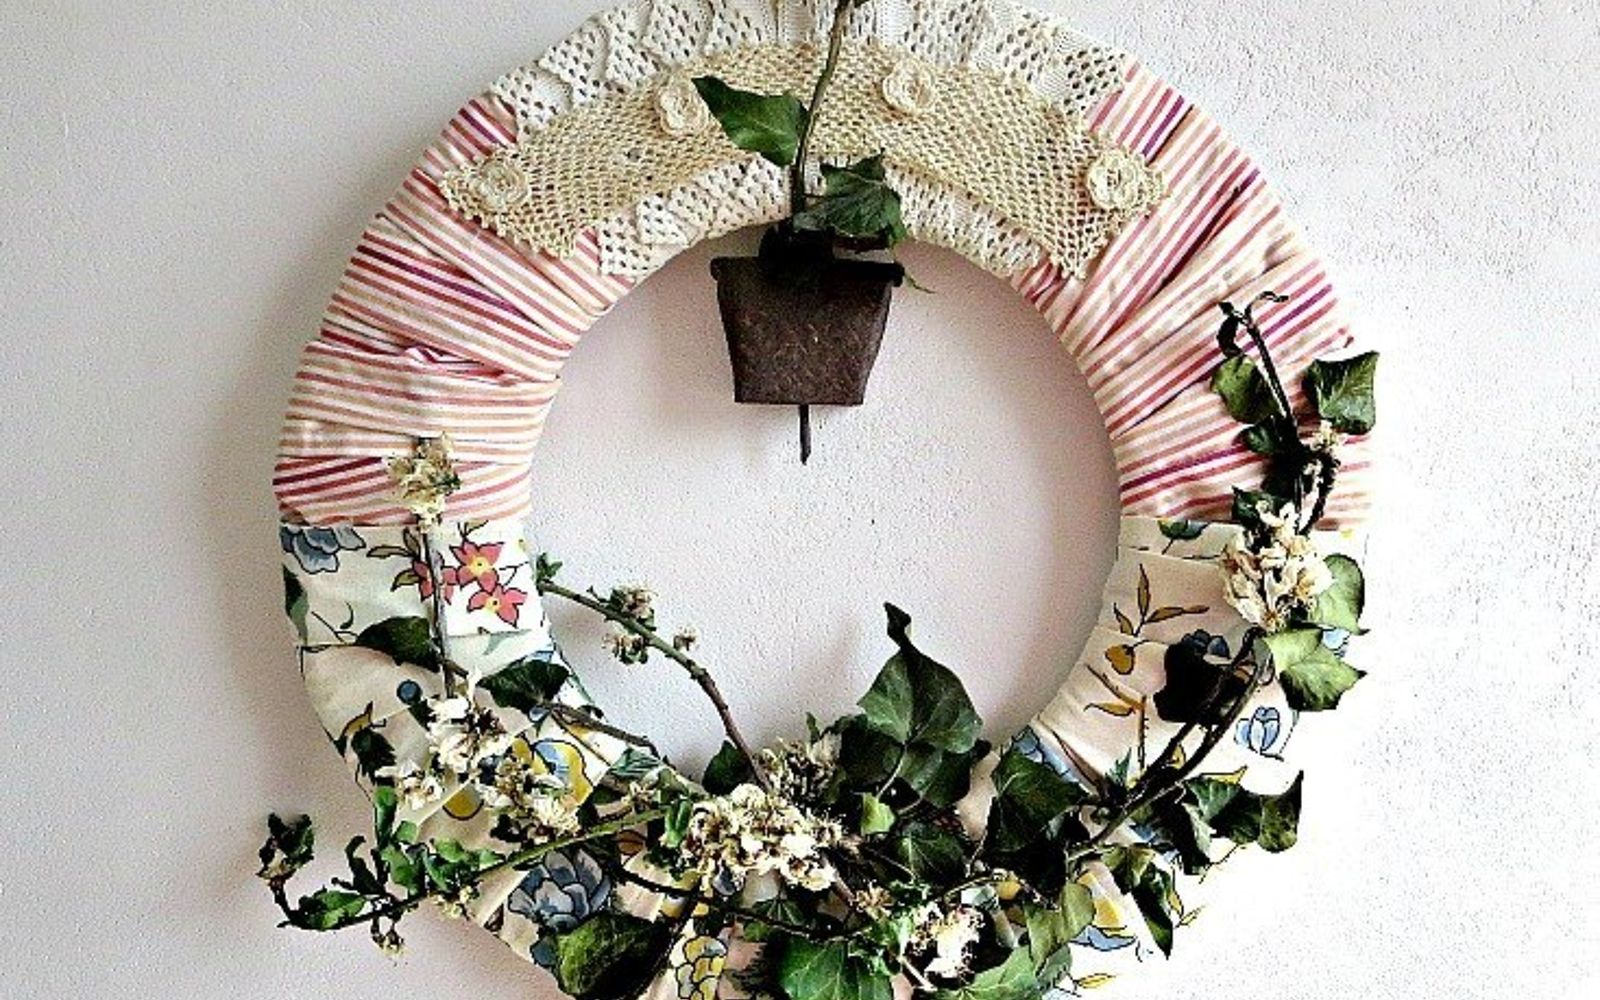 s 31 gorgeous spring wreaths that will make your neighbors smile, crafts, seasonal holiday decor, wreaths, Incorporate some real branches from outside